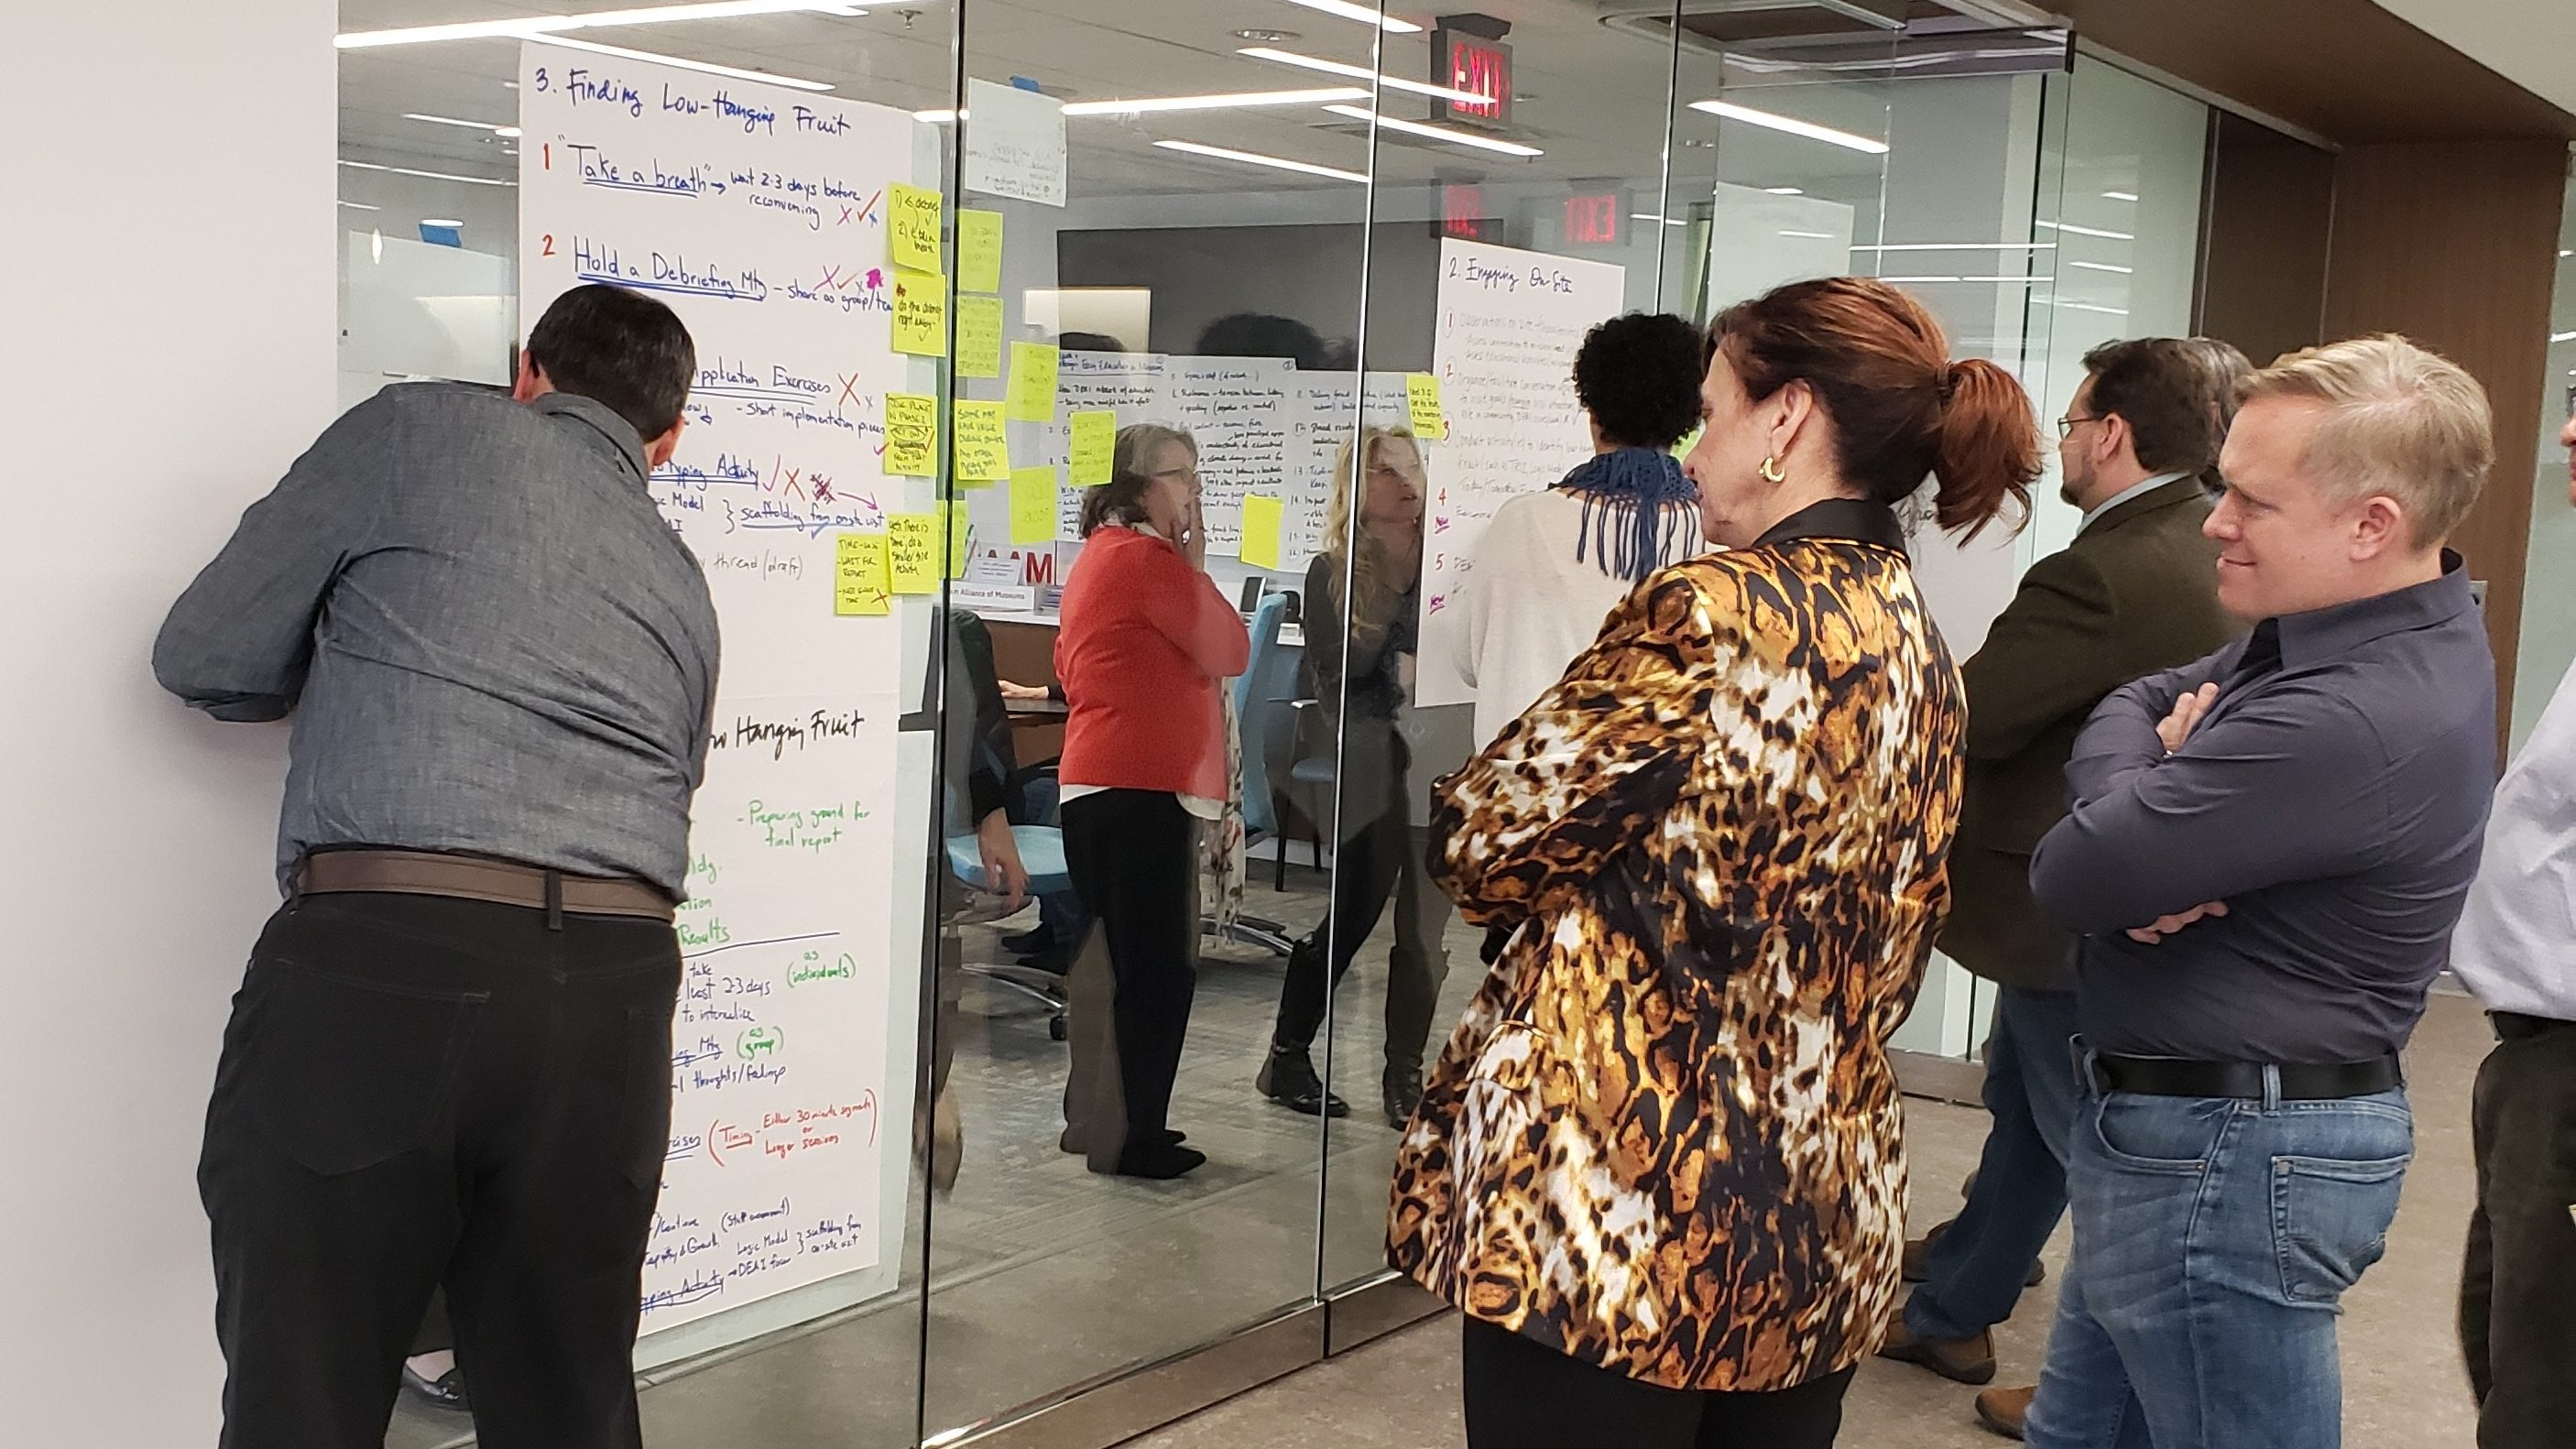 Participants in the convening stand around sheets of paper displayed on glass walls, writing and reading ideas and insights.